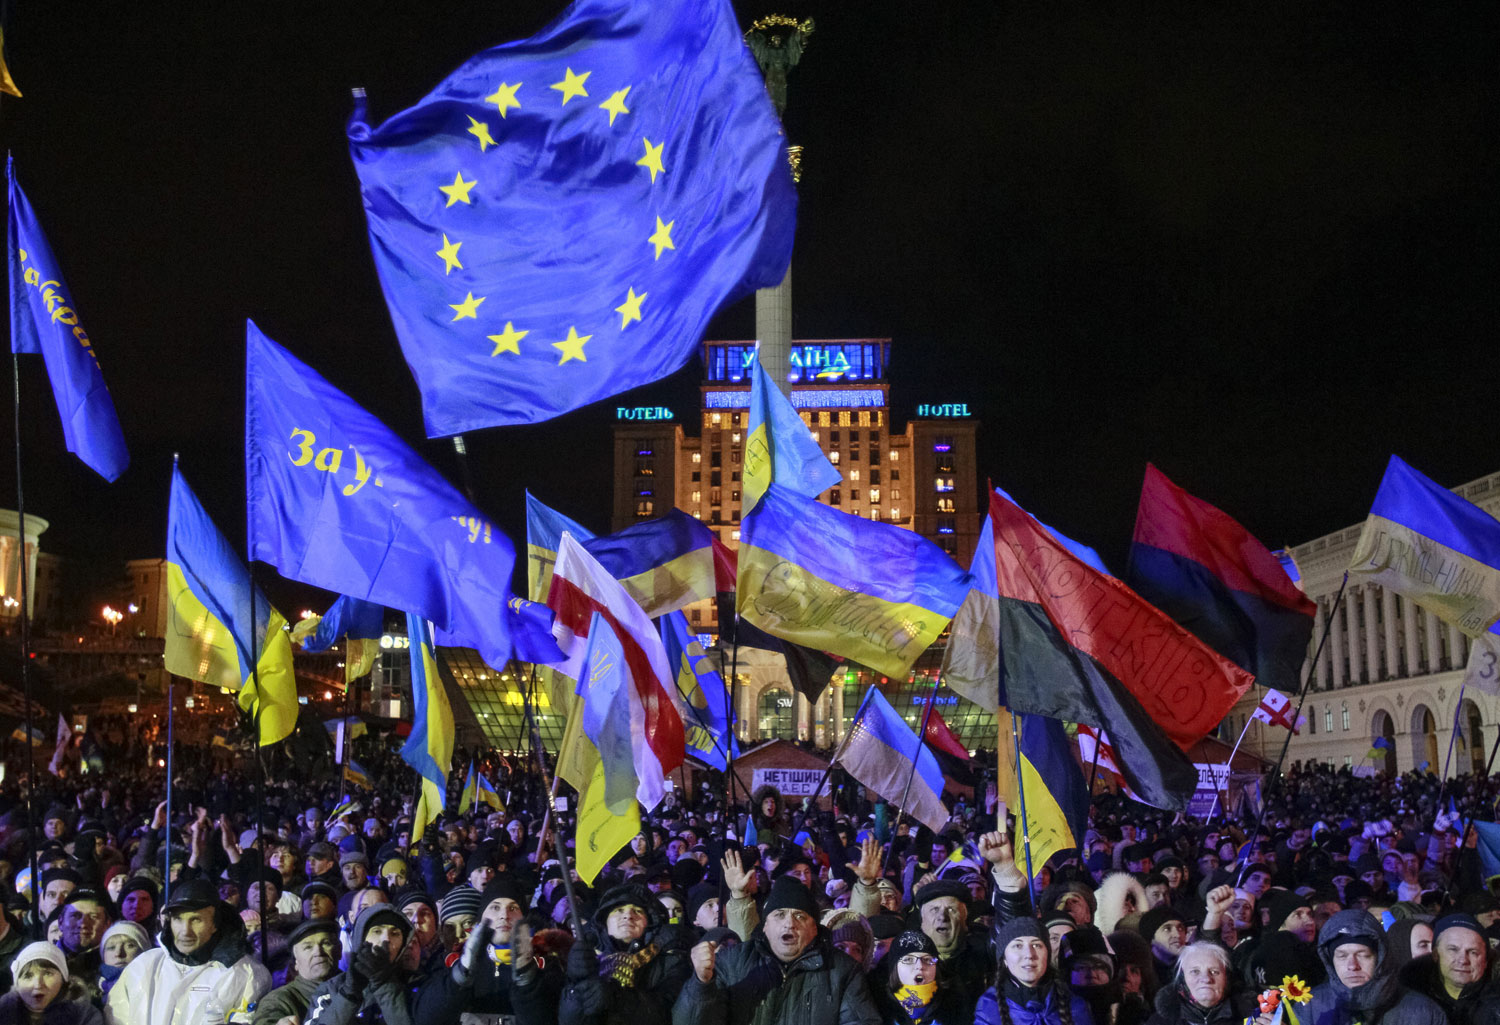 People-supporting-EU-integration-attend-a-rally-in-Kiev-December-2-2013.-ReutersGleb-Garanich